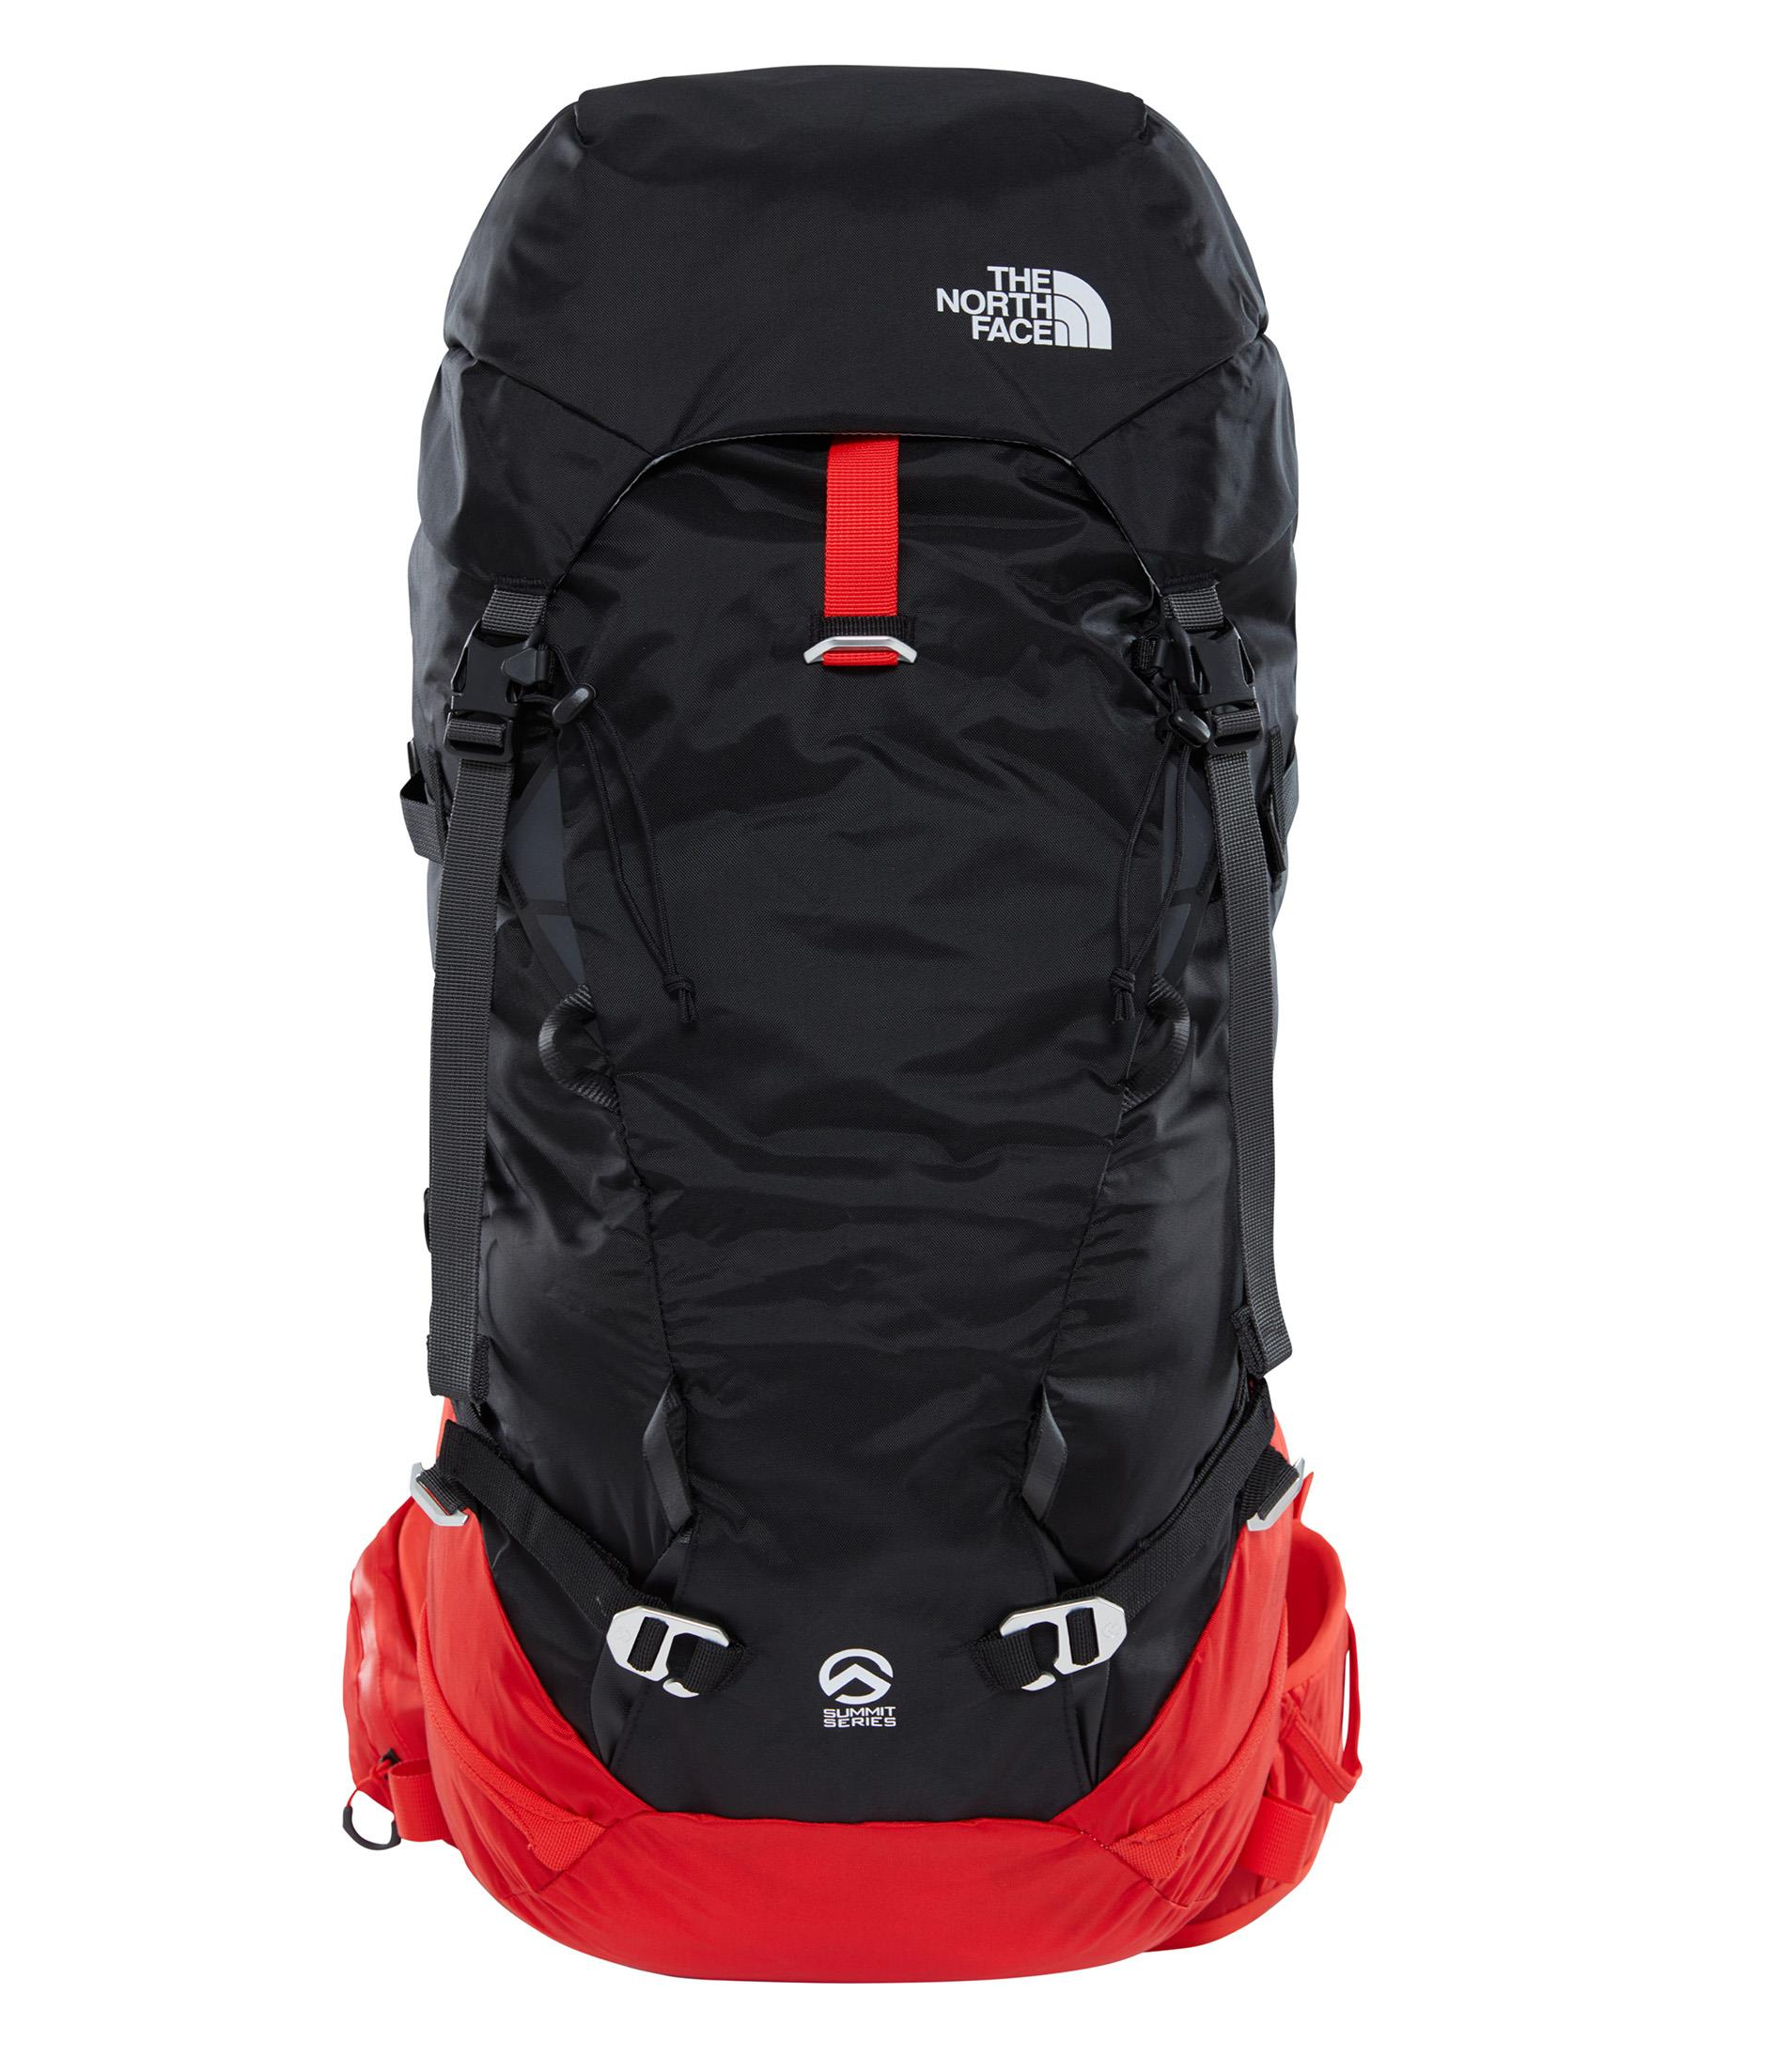 The North Face Phantom 38 Nf0A3G76Wu51